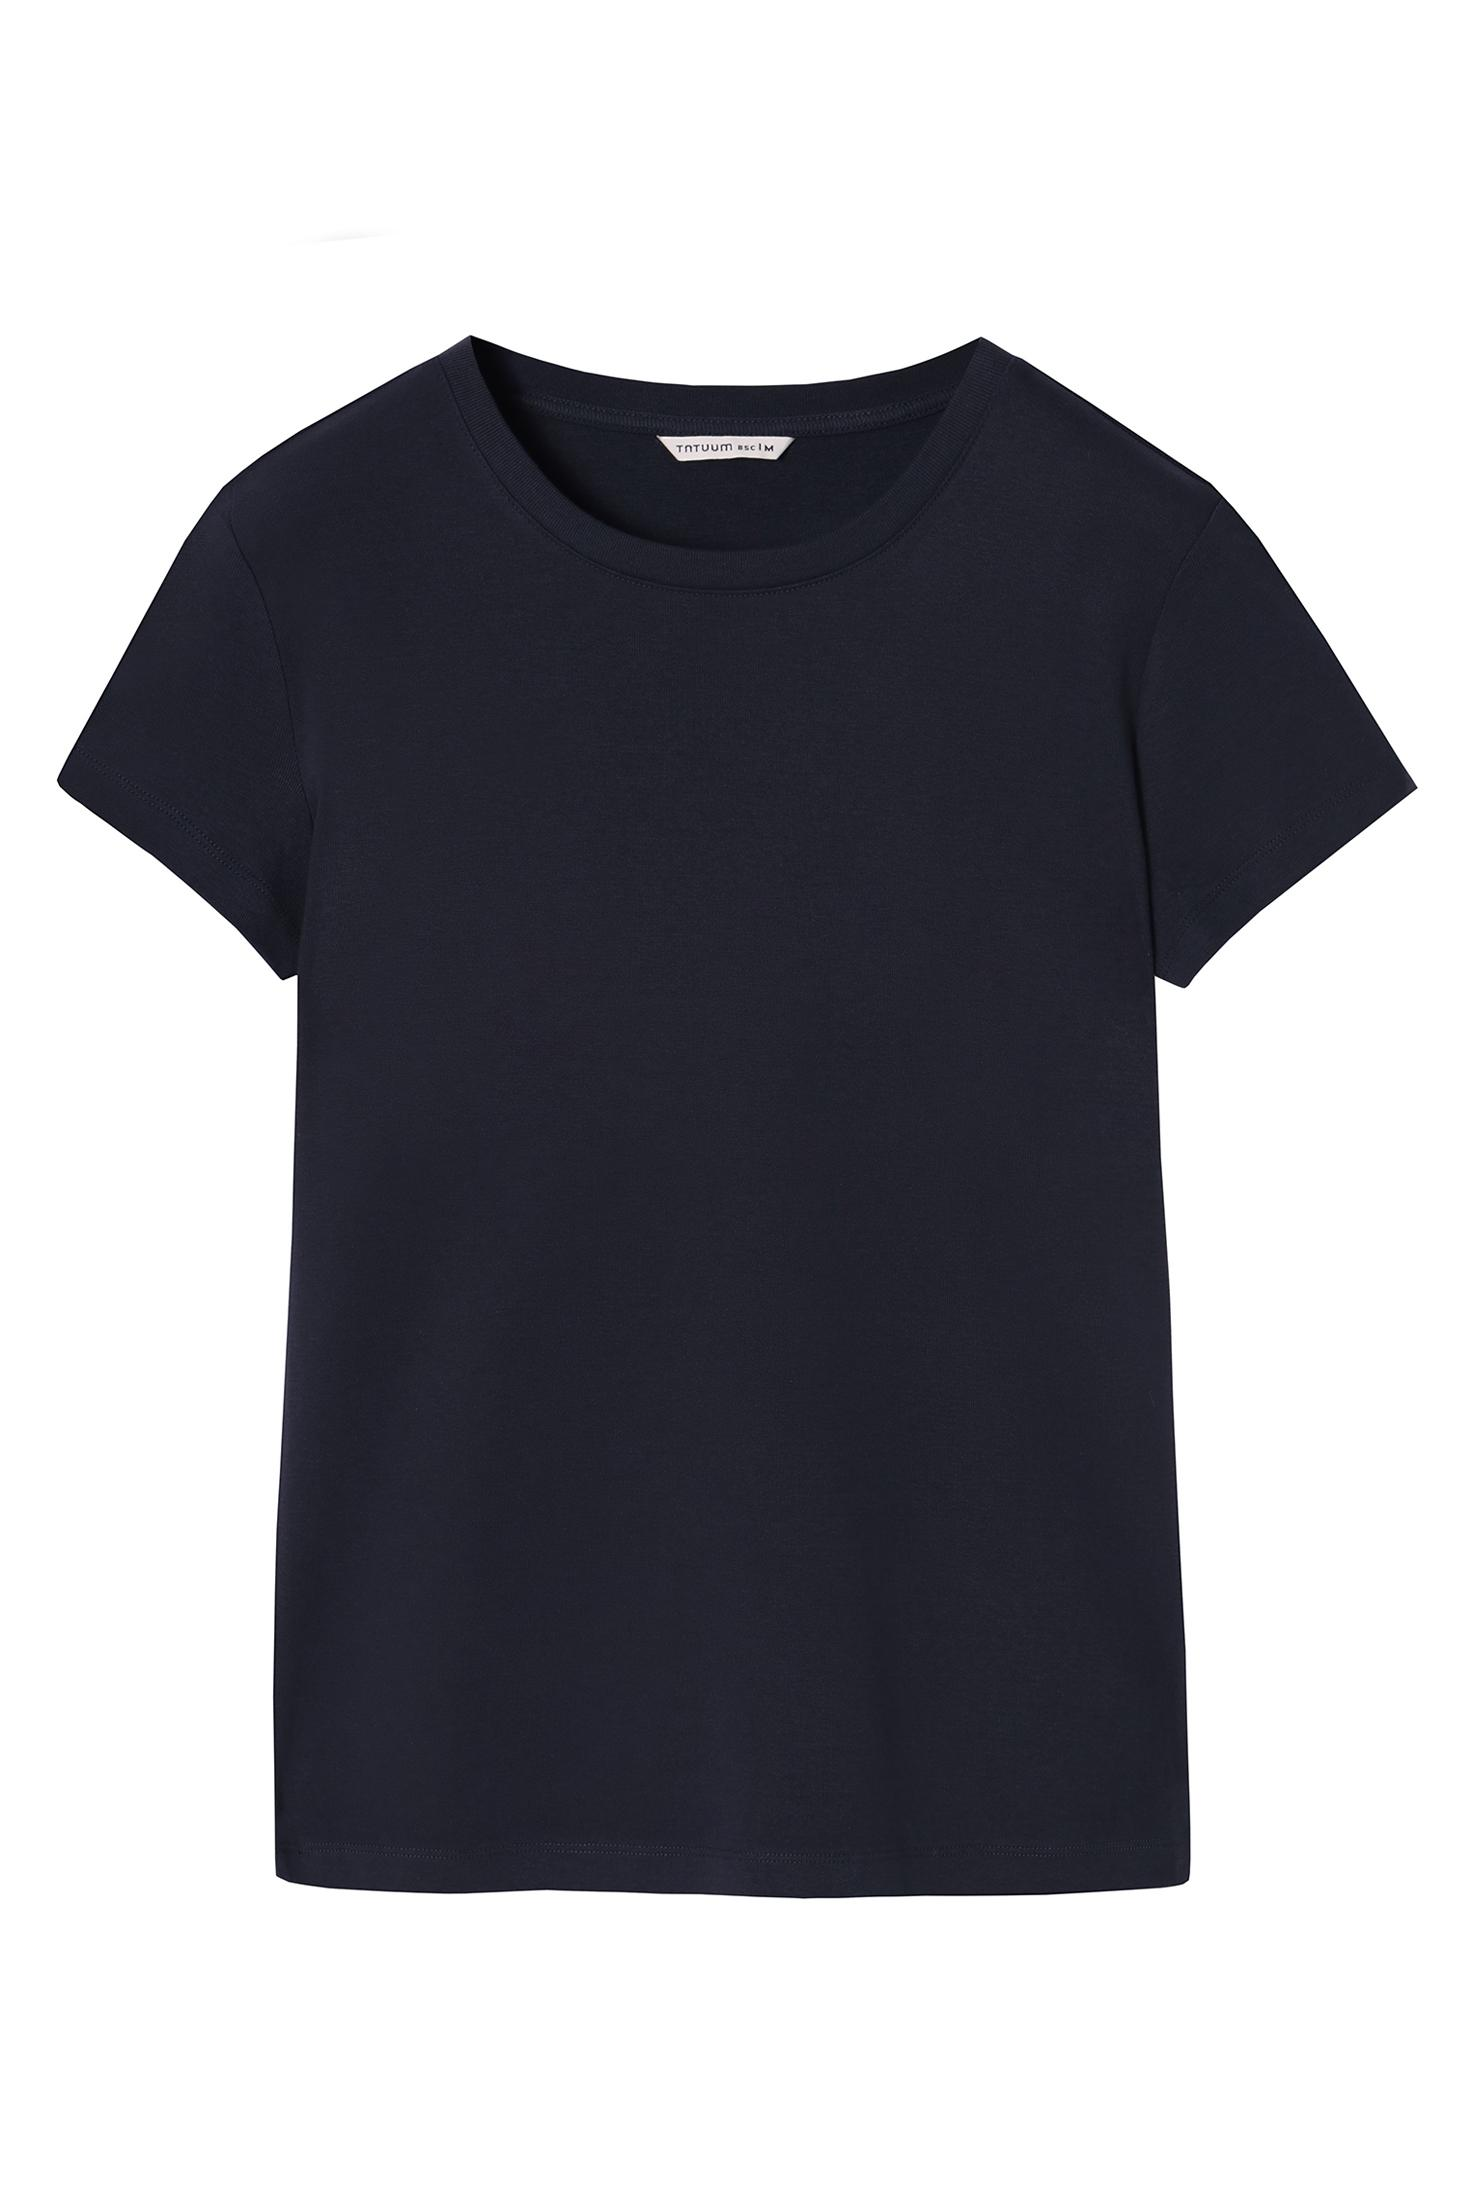 LADIES' ORGANIC COTTON T-SHIRT KIRI